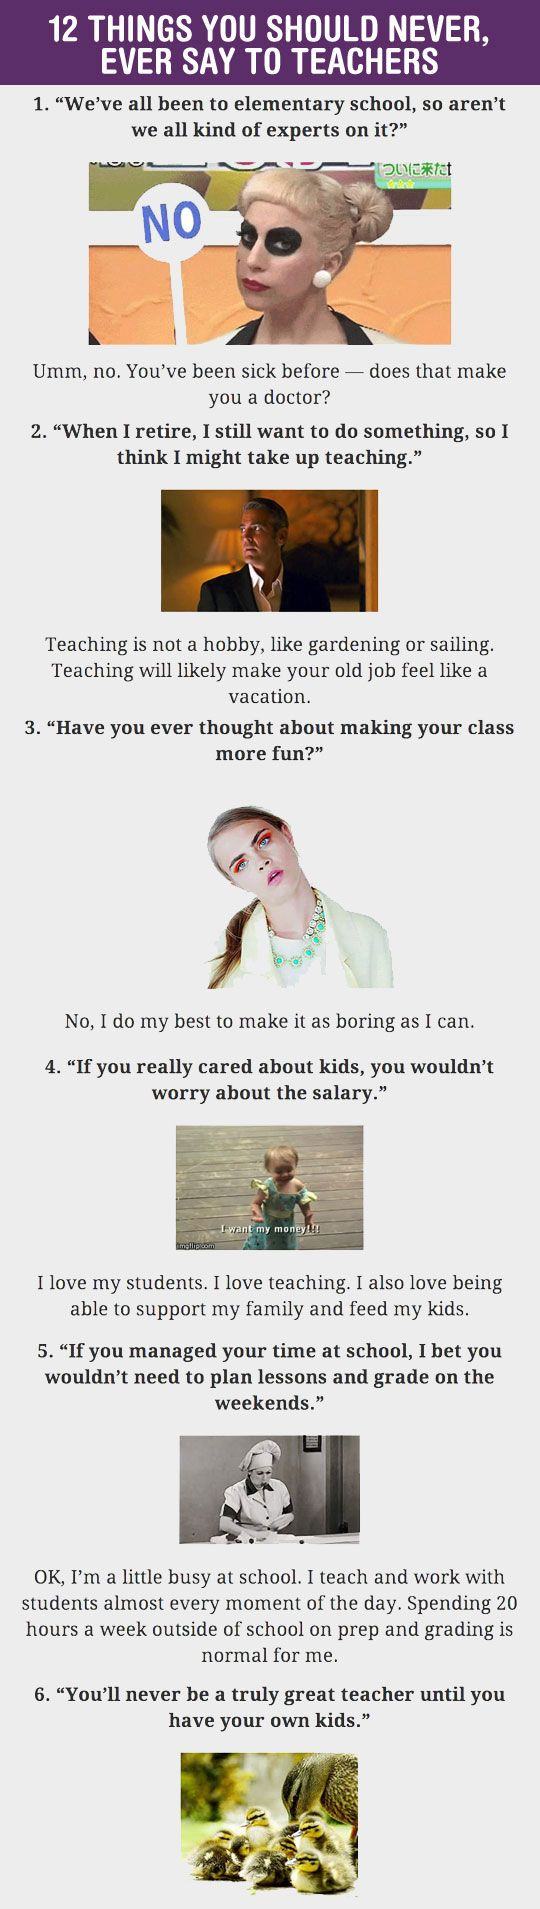 how to get paid to vacation